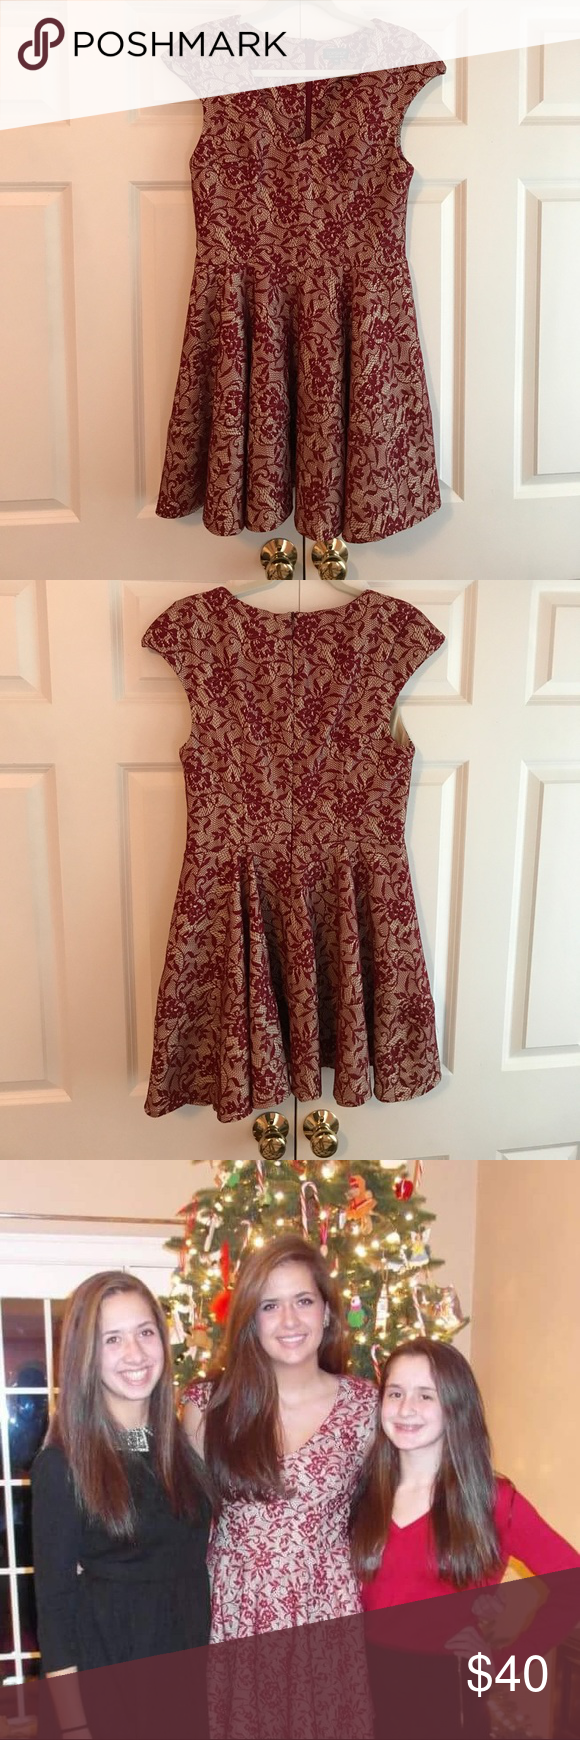 Worn Once Topshop Red Bonded Lace Skater Dress Semi Formal